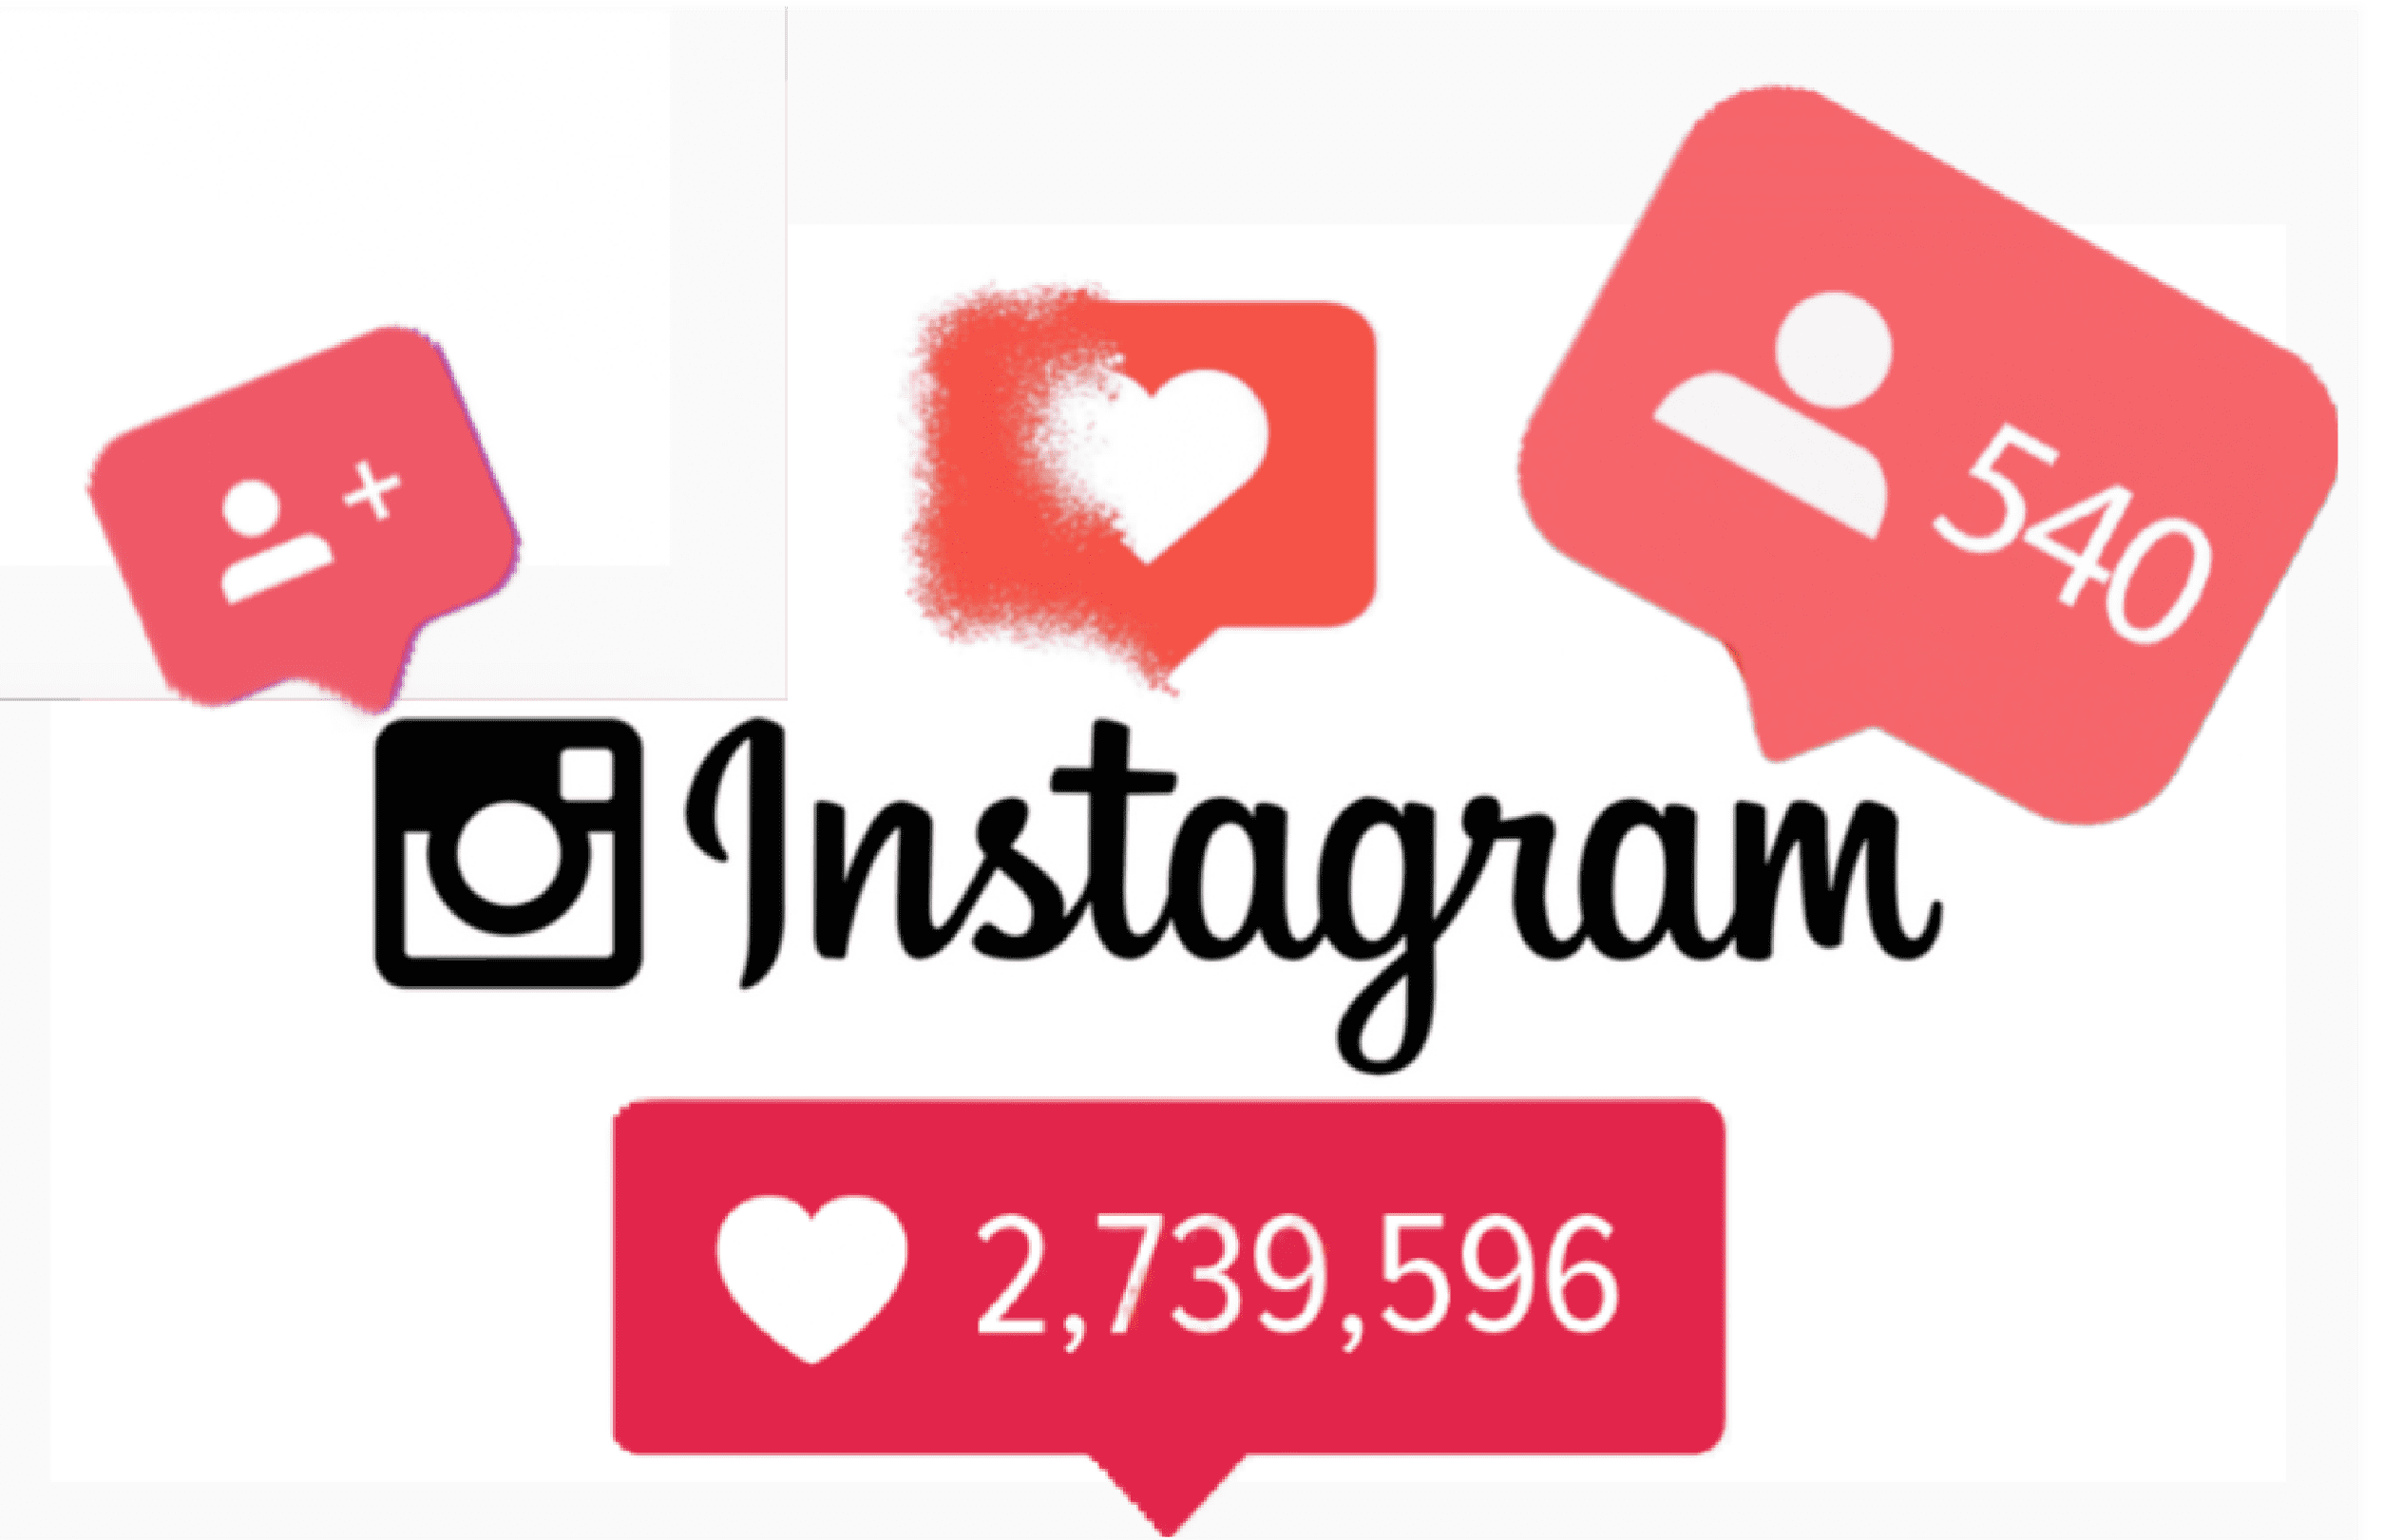 Without problems, know how to buy Instagram followers (como comprar seguidores Instagram) safely by visiting the website of celebrities.